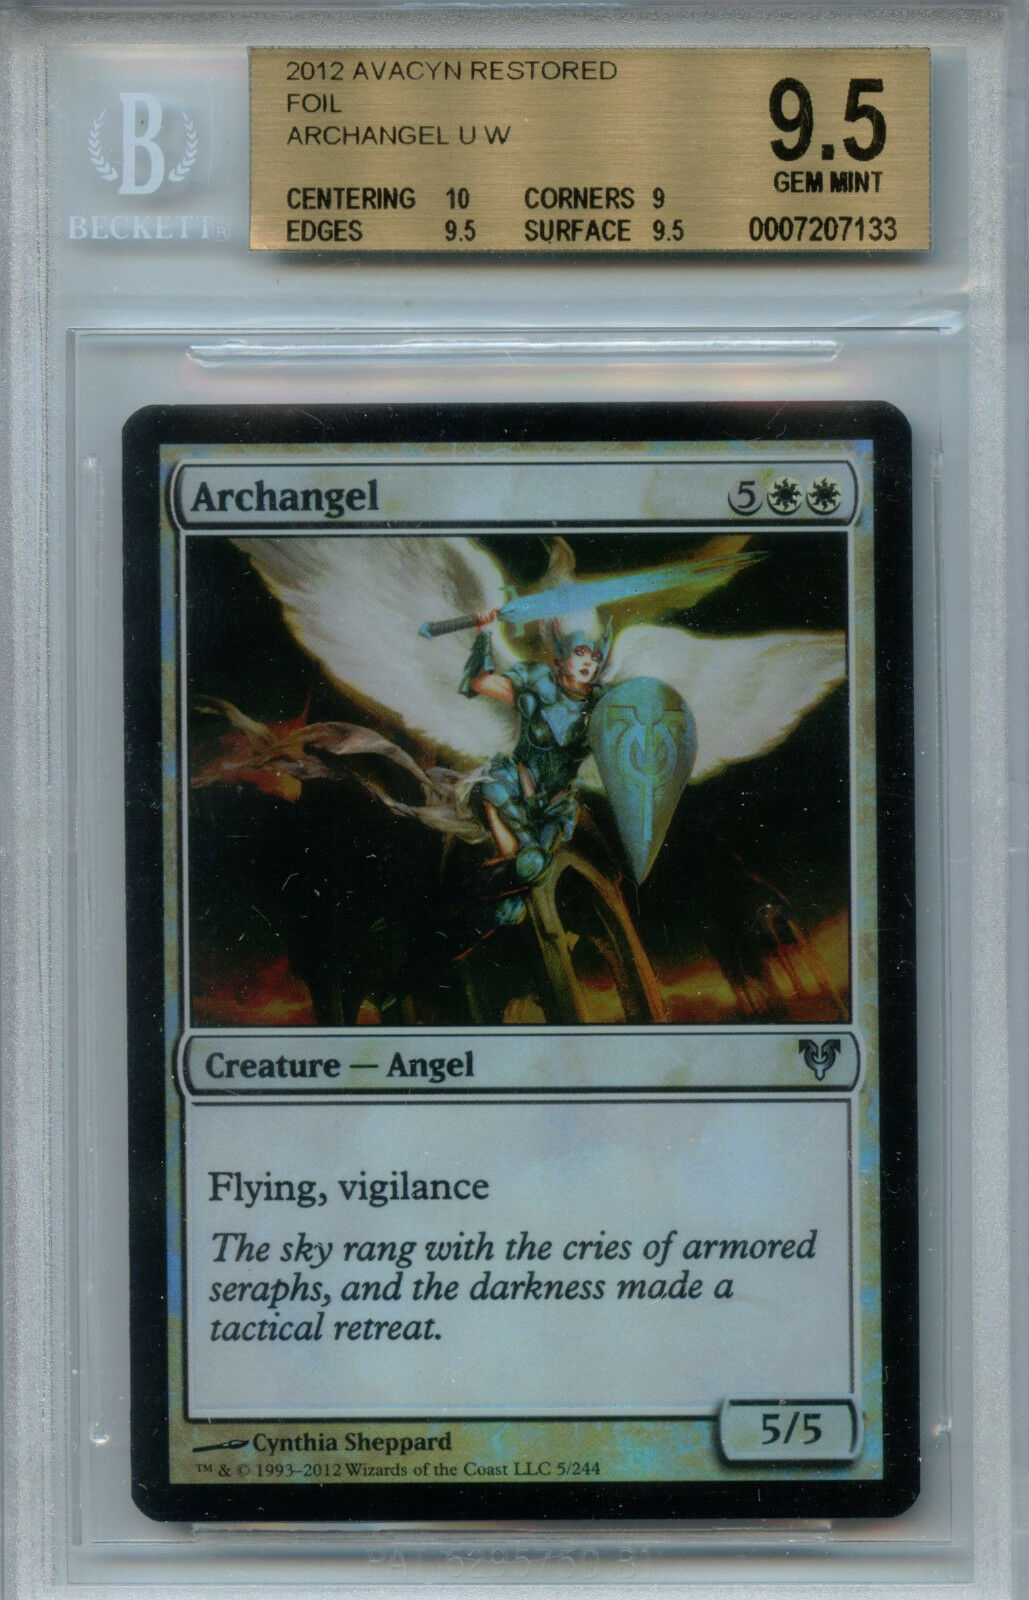 MTG Archangel BGS 9.5 Gem Mint Avacyn Restored Foil Magic Card Amricons 7133